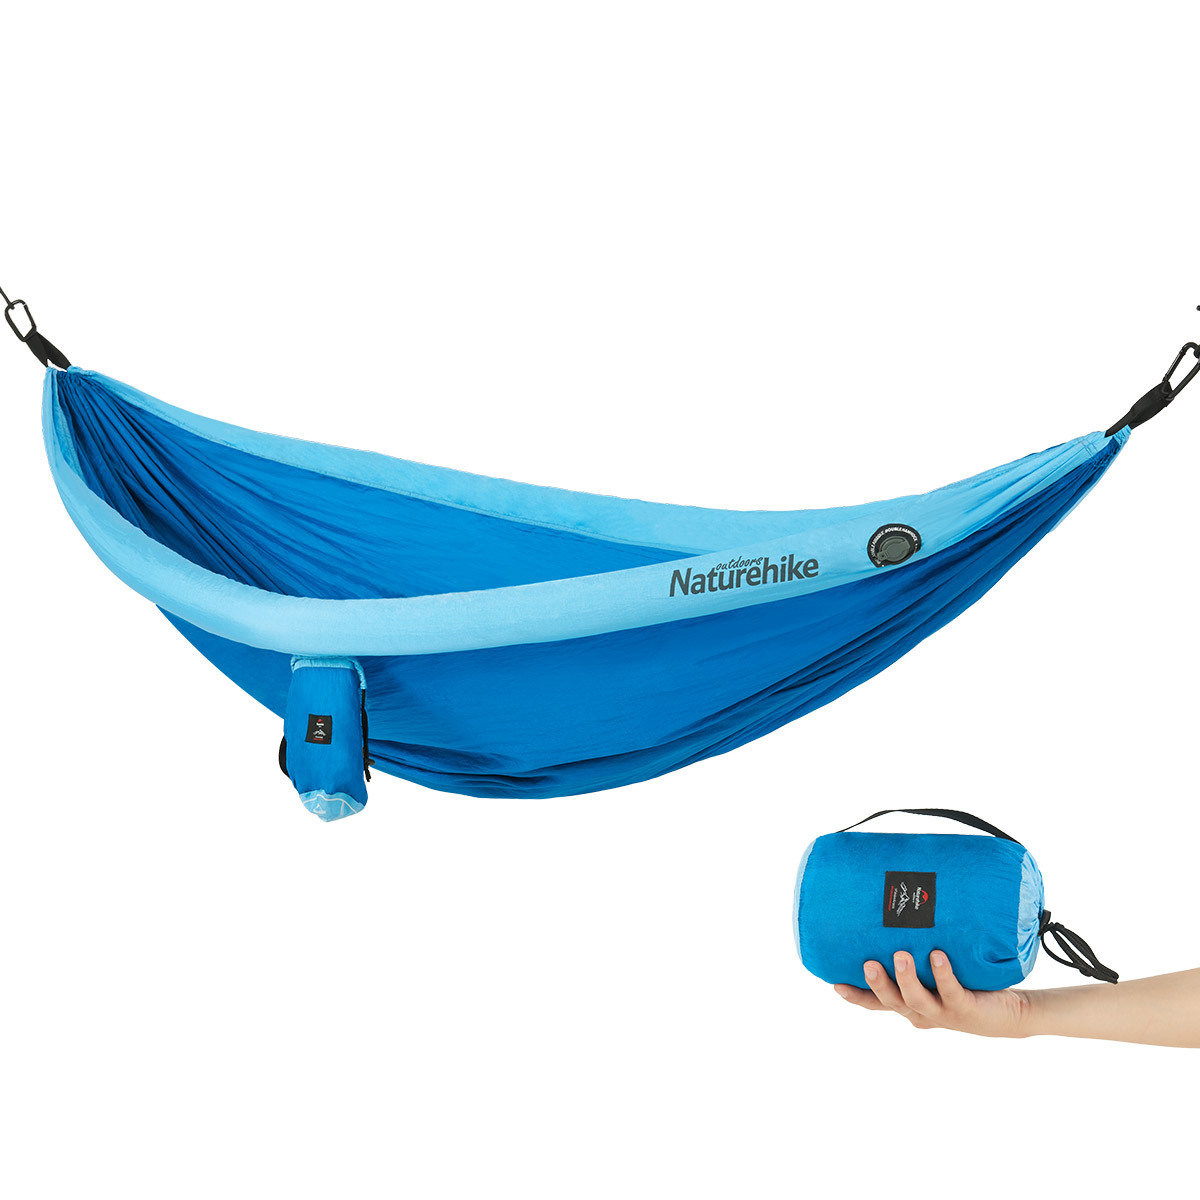 NH Naturehike Hammock Outdoor Indoor Household Adult Pajama Swing Single Double Dormitory Students Hanging Chair